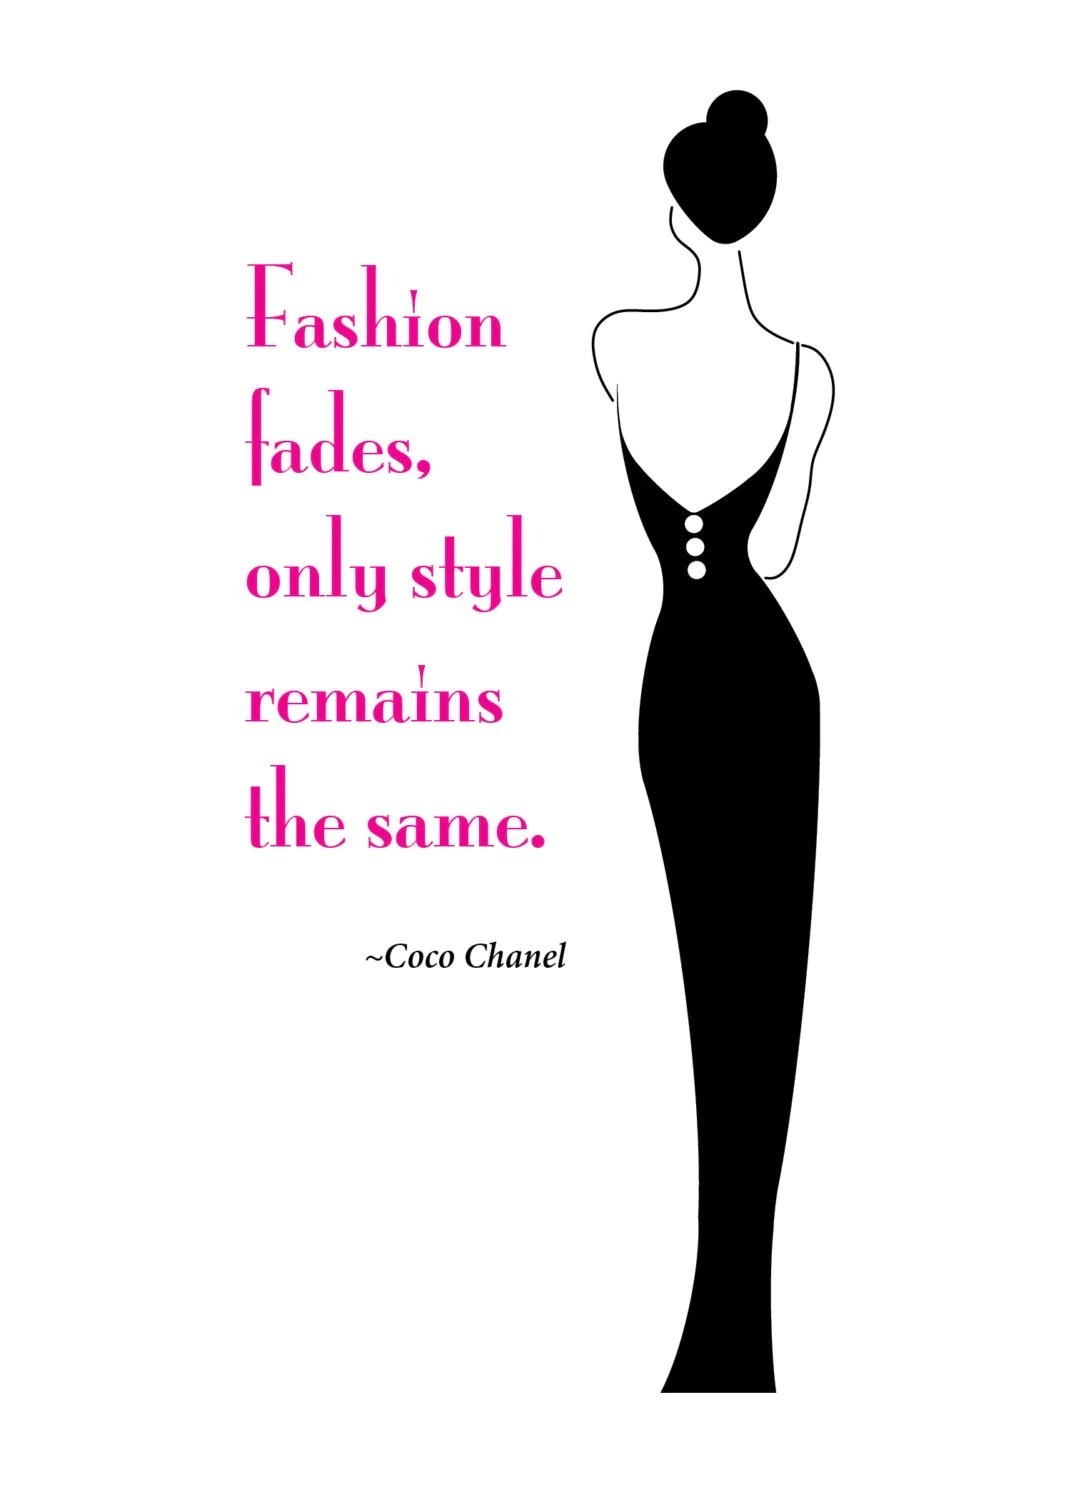 Coco Chanel Perfume Quotes. QuotesGram